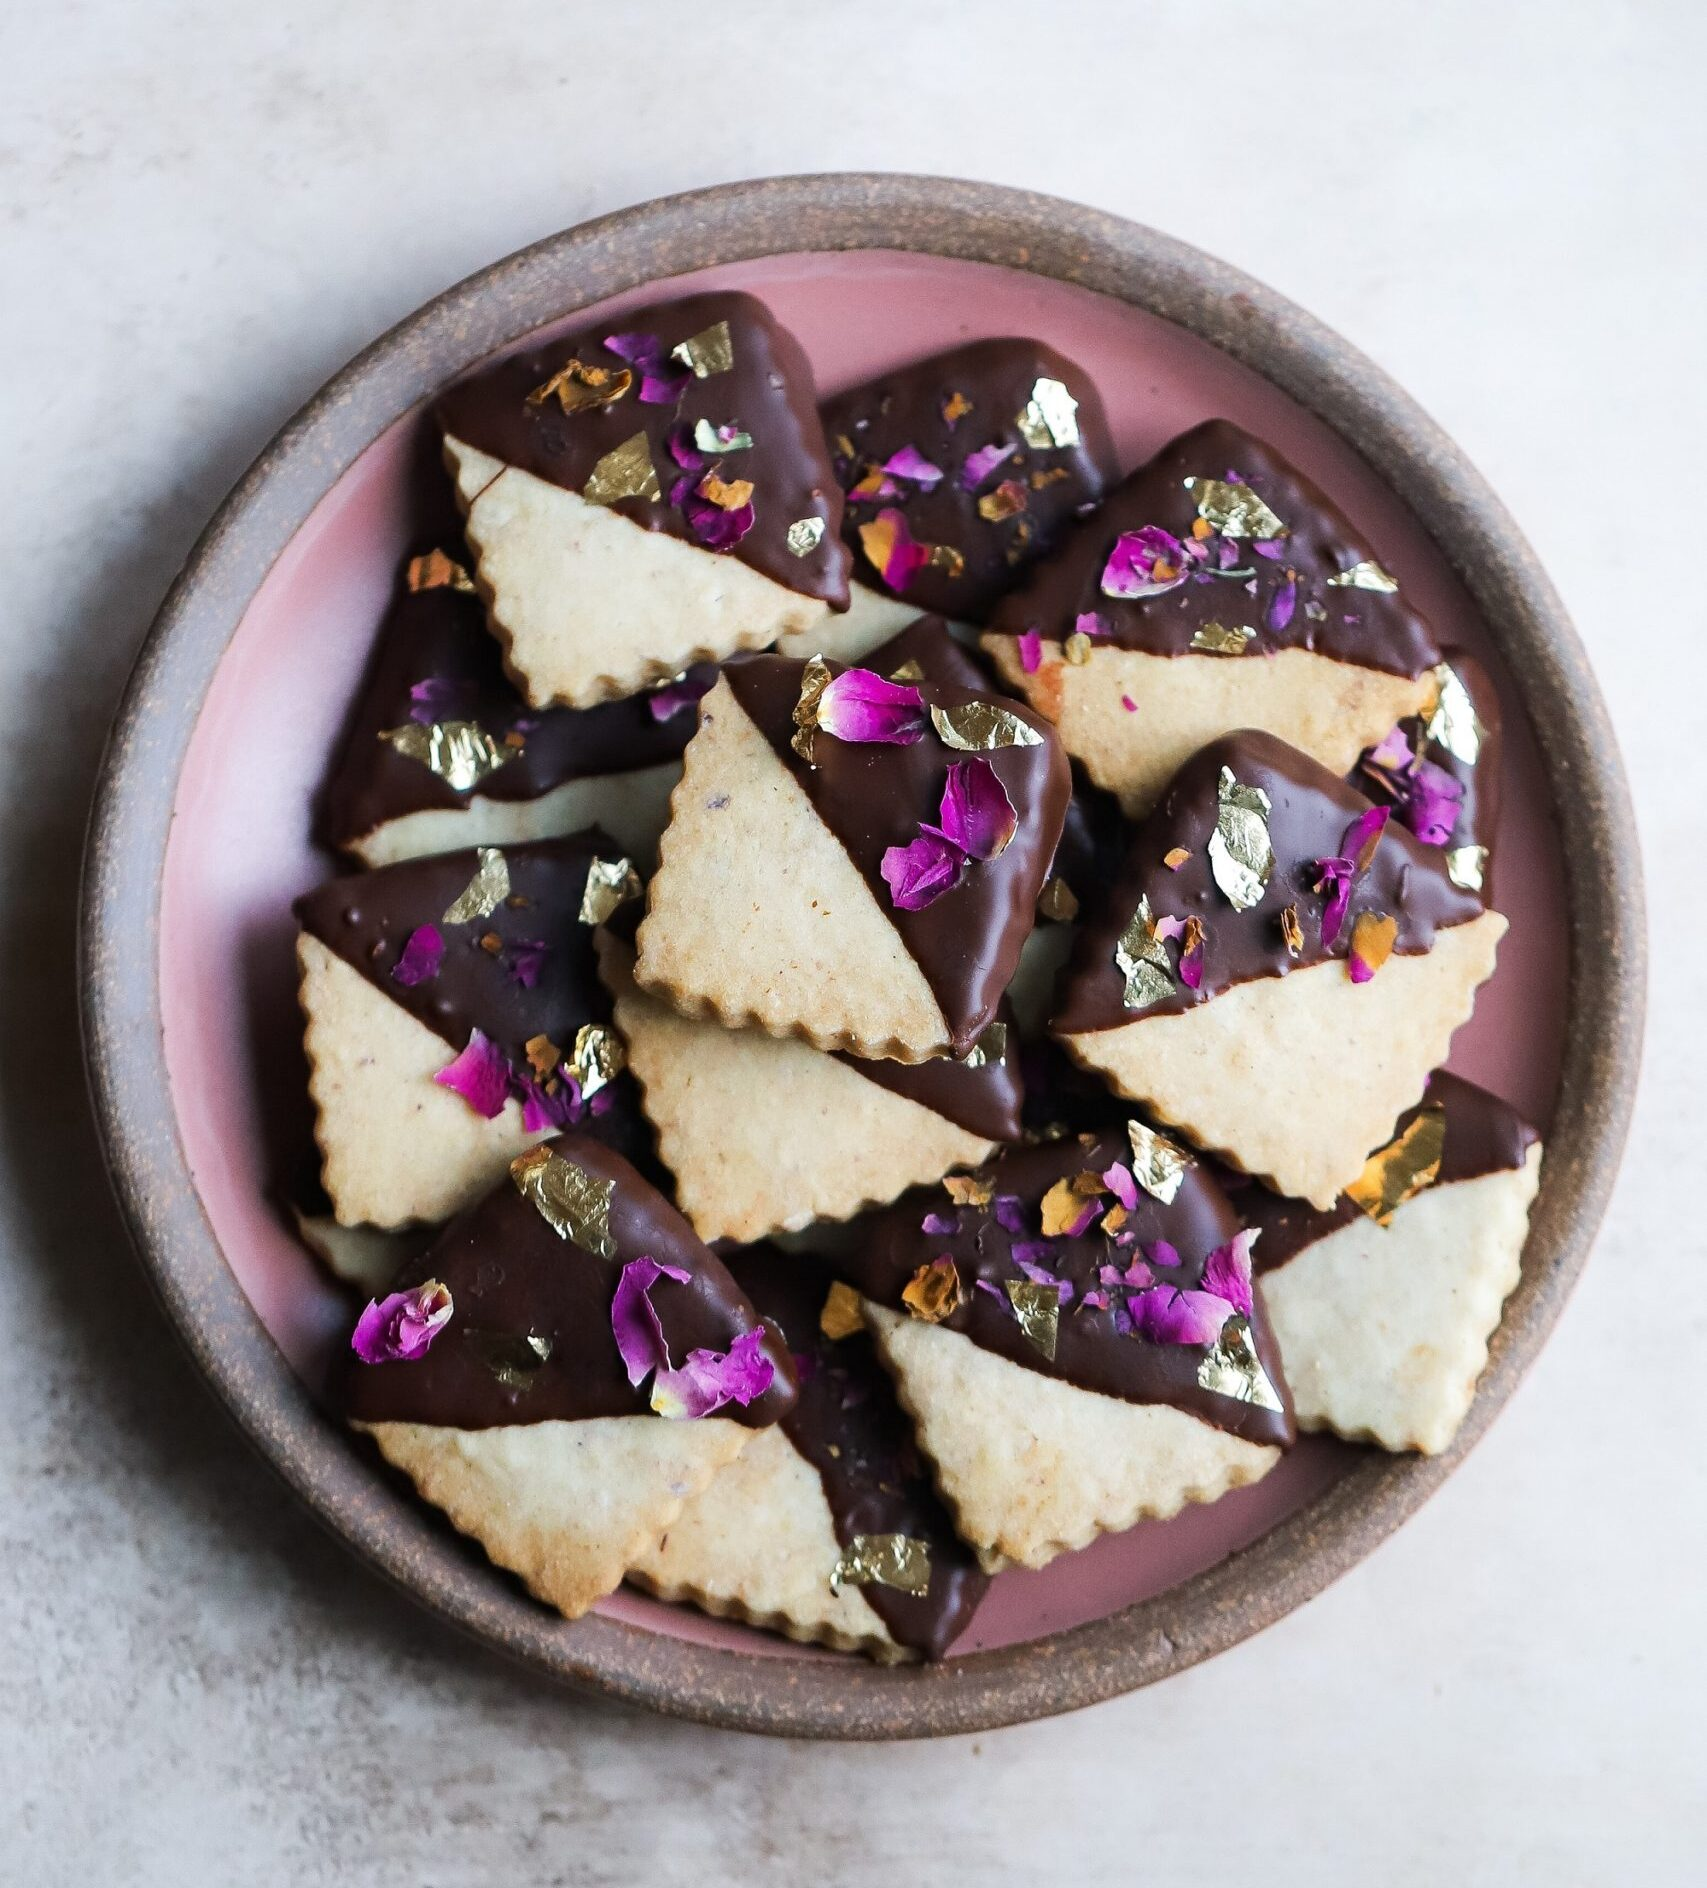 LNUT AND CARDAMOM SHORTBREAD dipped in ROSE INFUSED CHOCOLATE: